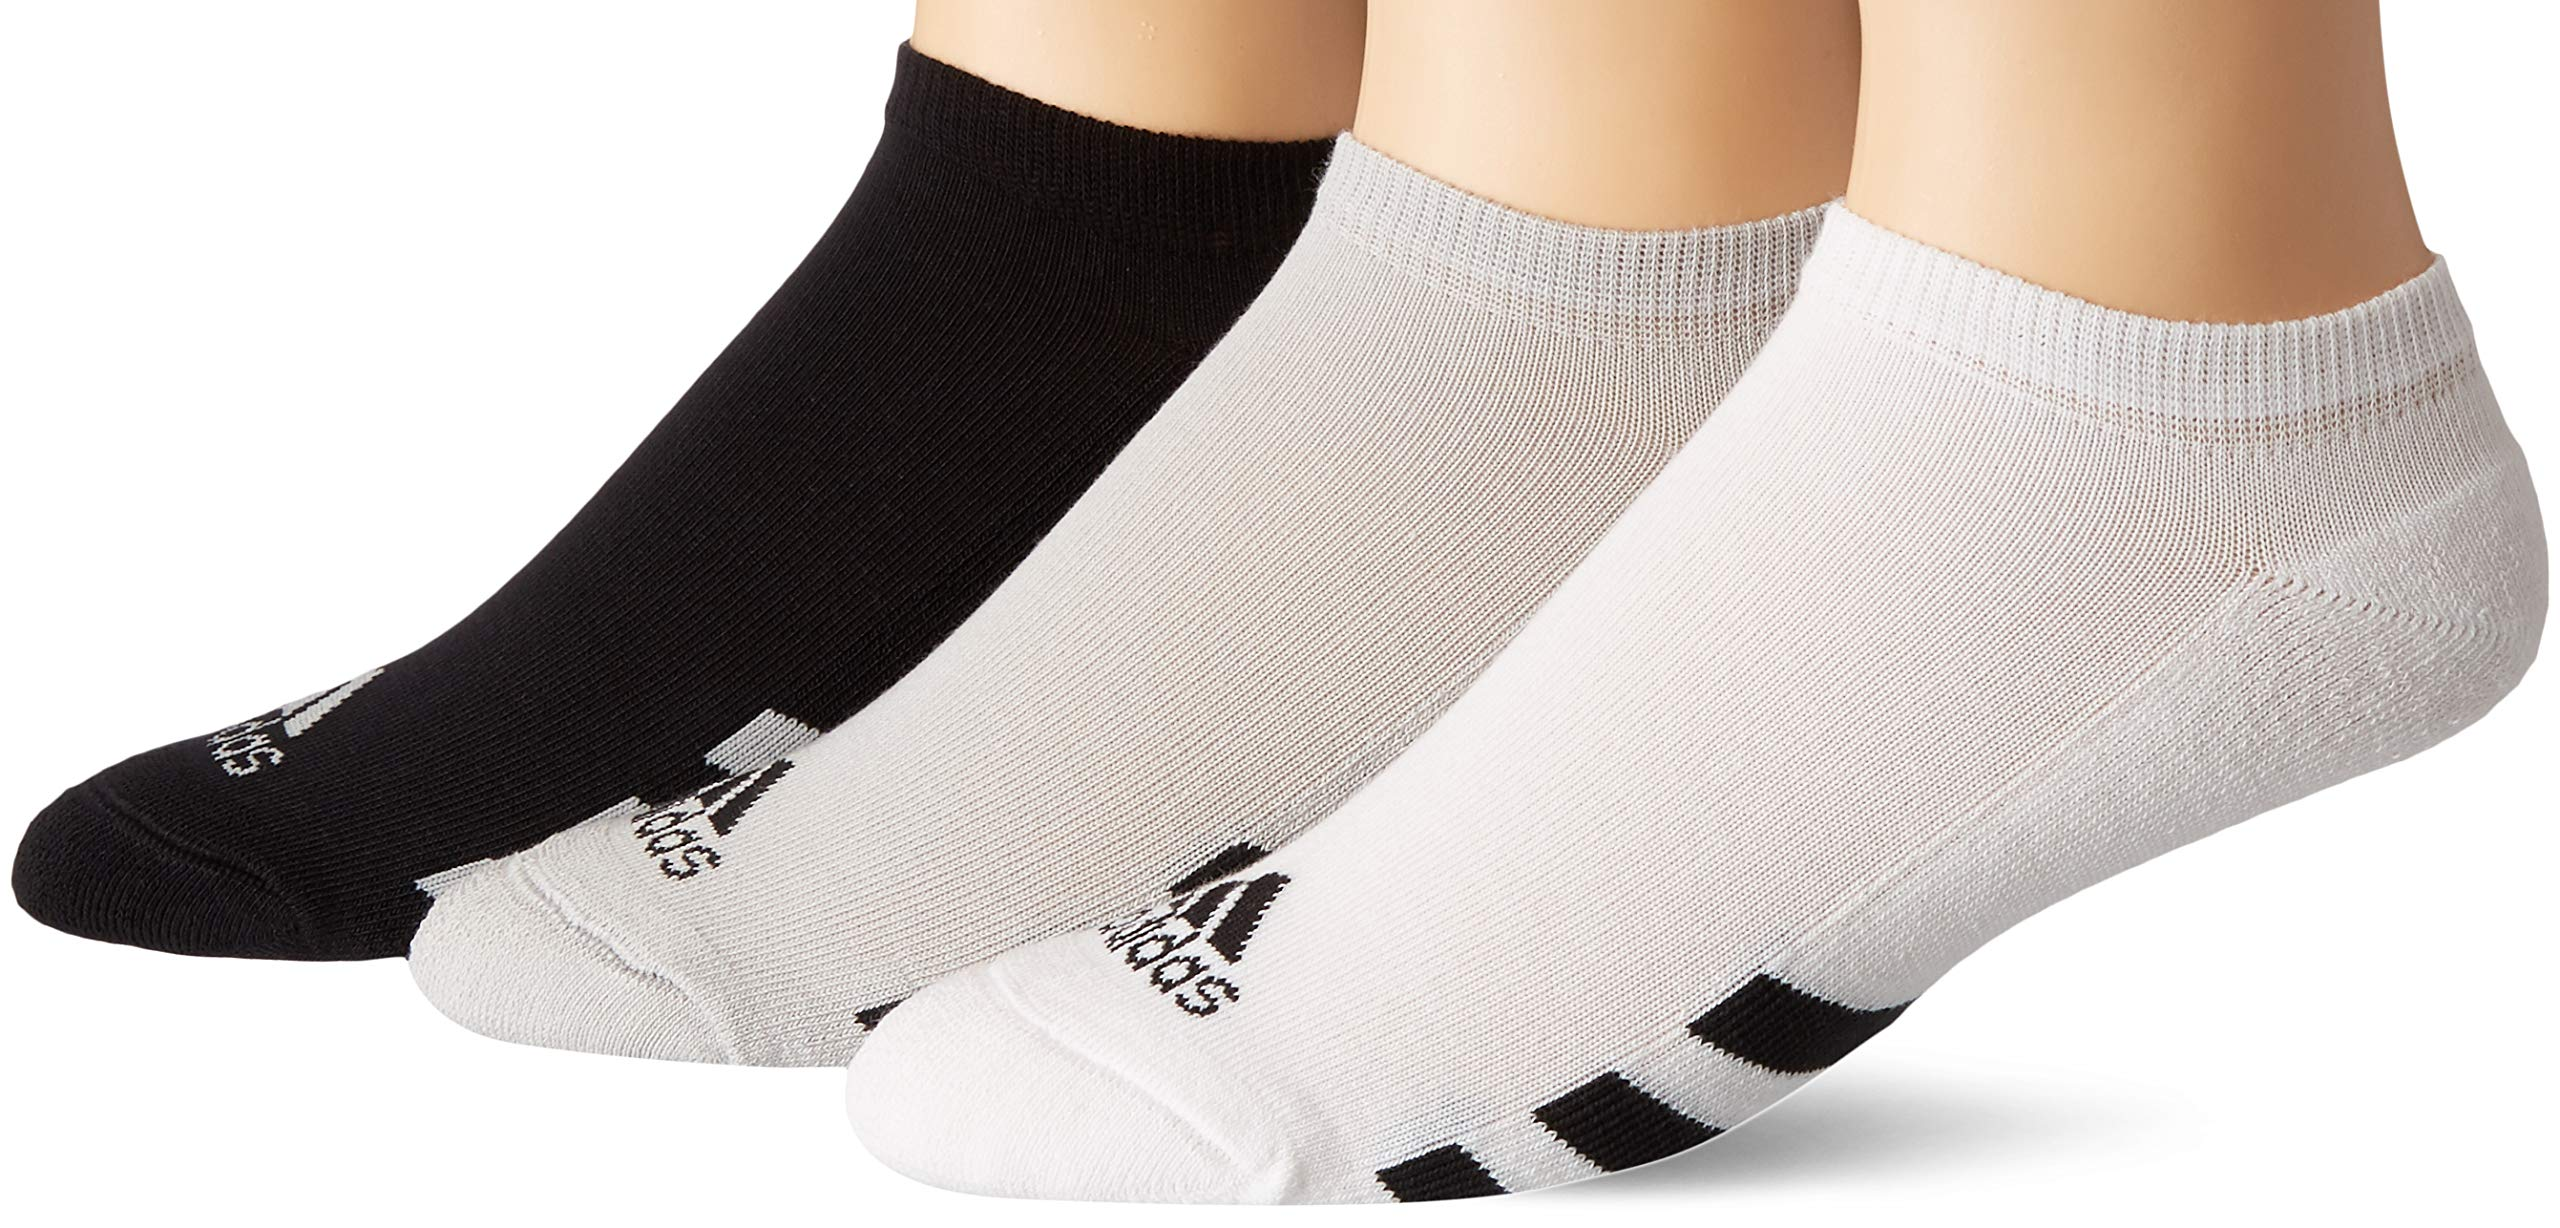 adidas Golf Men's 3-Pack No Show Sock, Black/Grey Two/White, 11-14 by adidas